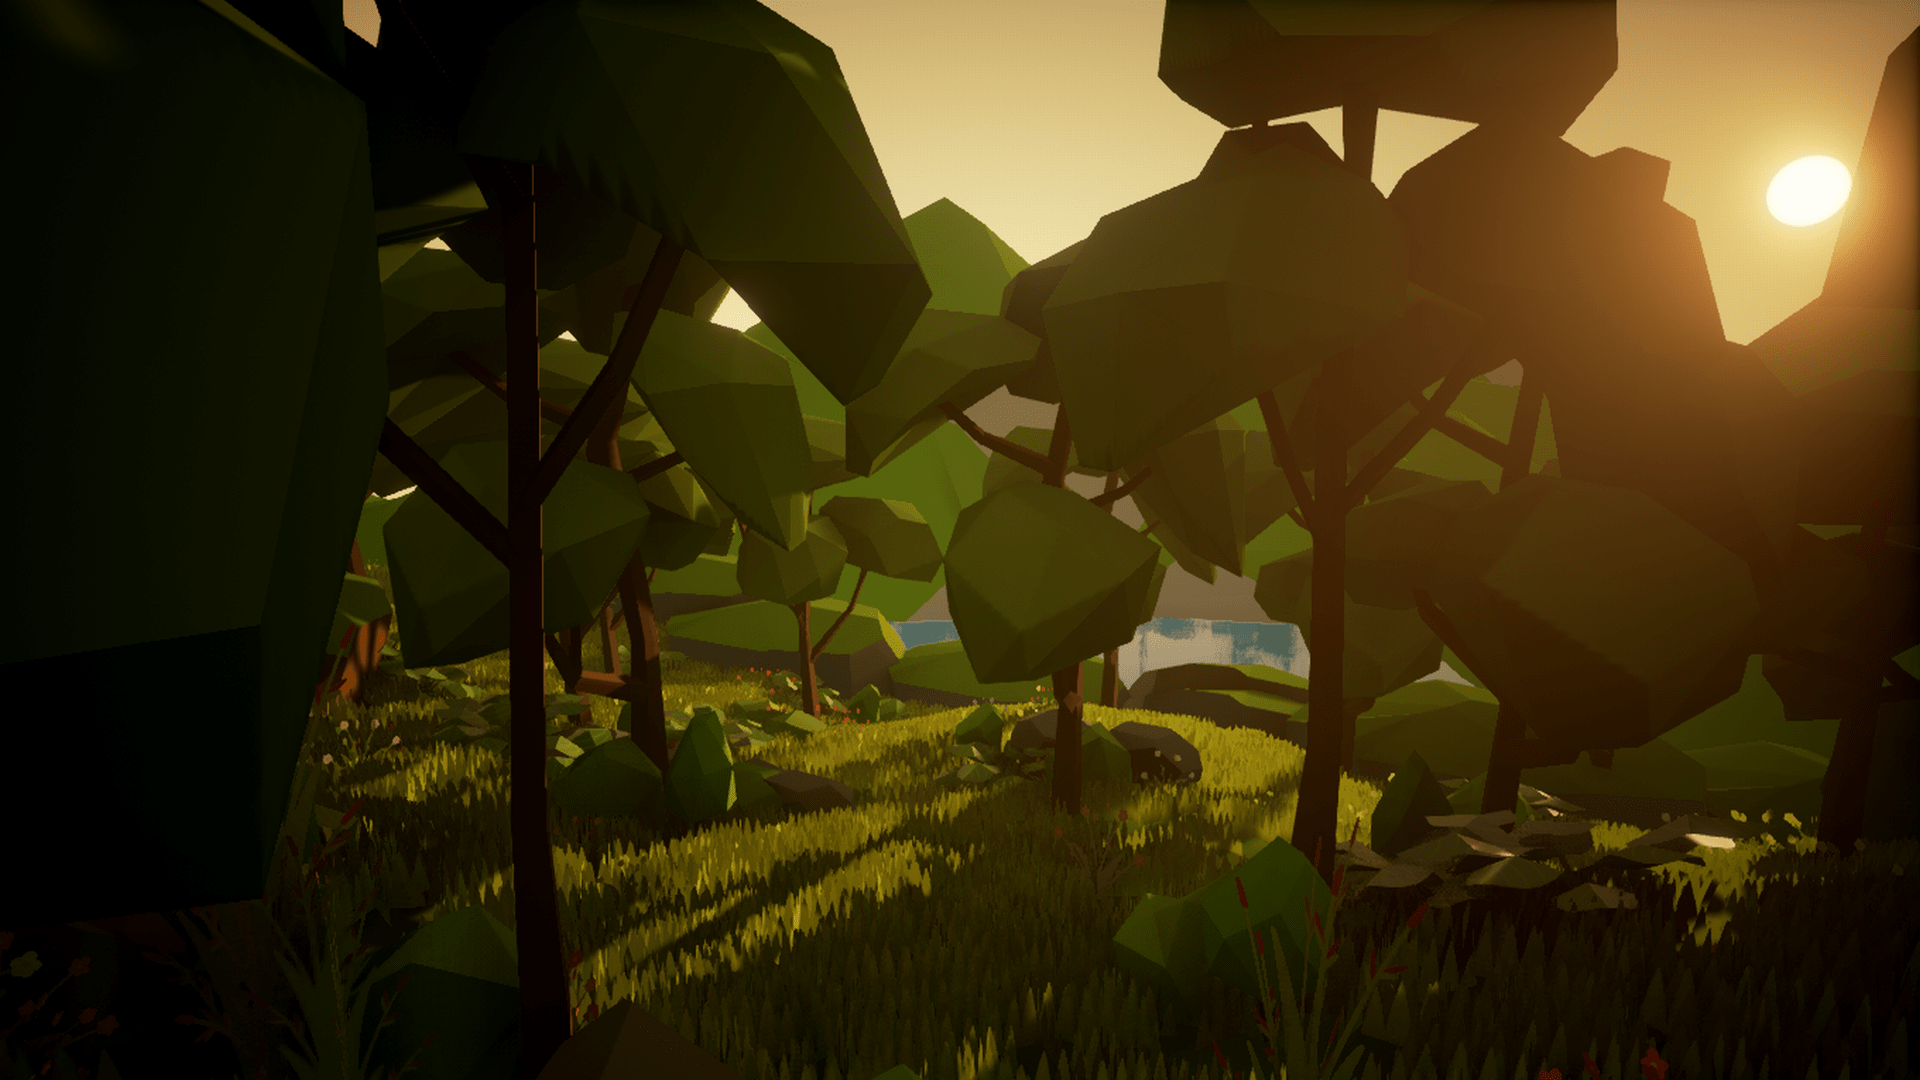 Olbert's Low Poly: Forest by Whitman And Olbert in